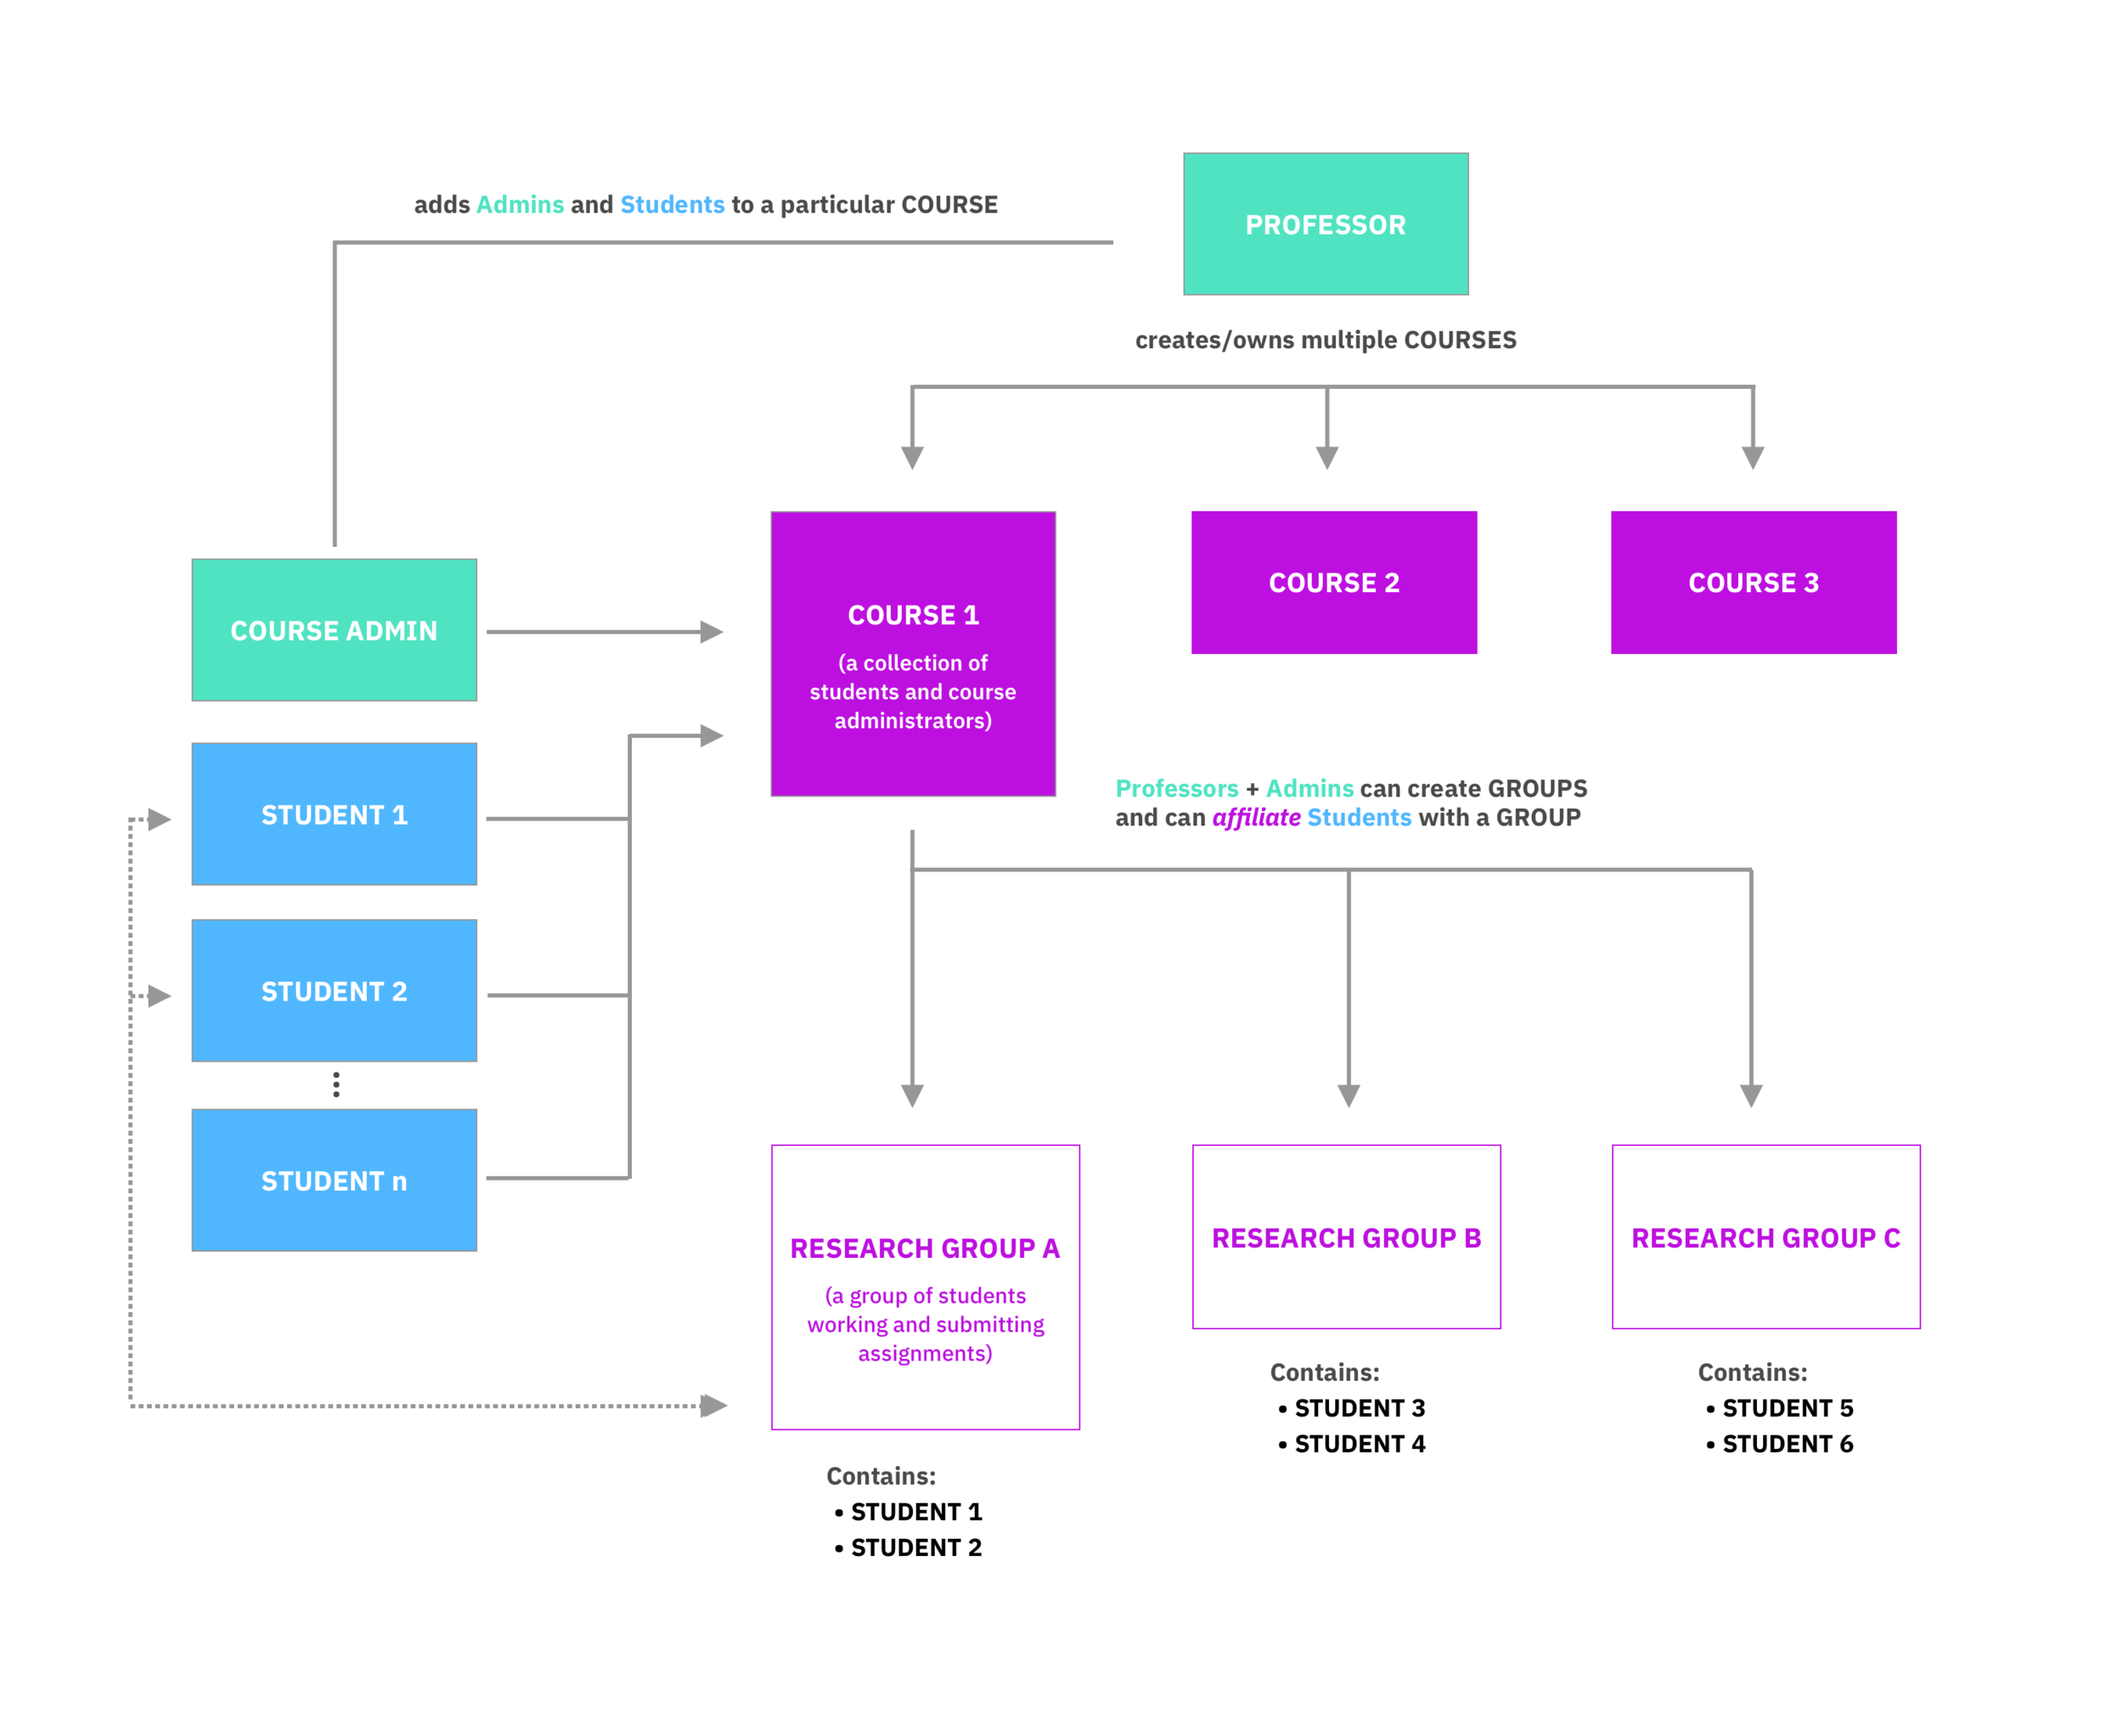 Permissions diagram and site structure, based on user needs.